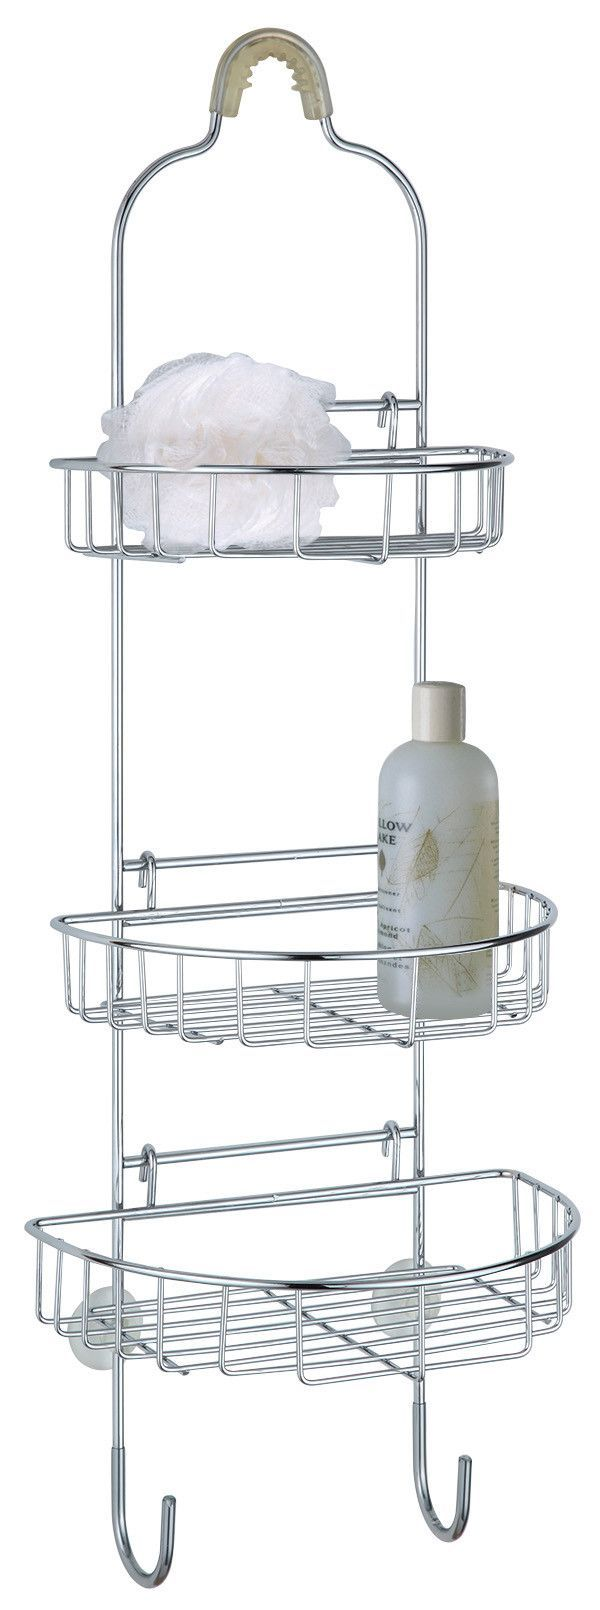 Hanging Shower Caddy | Products